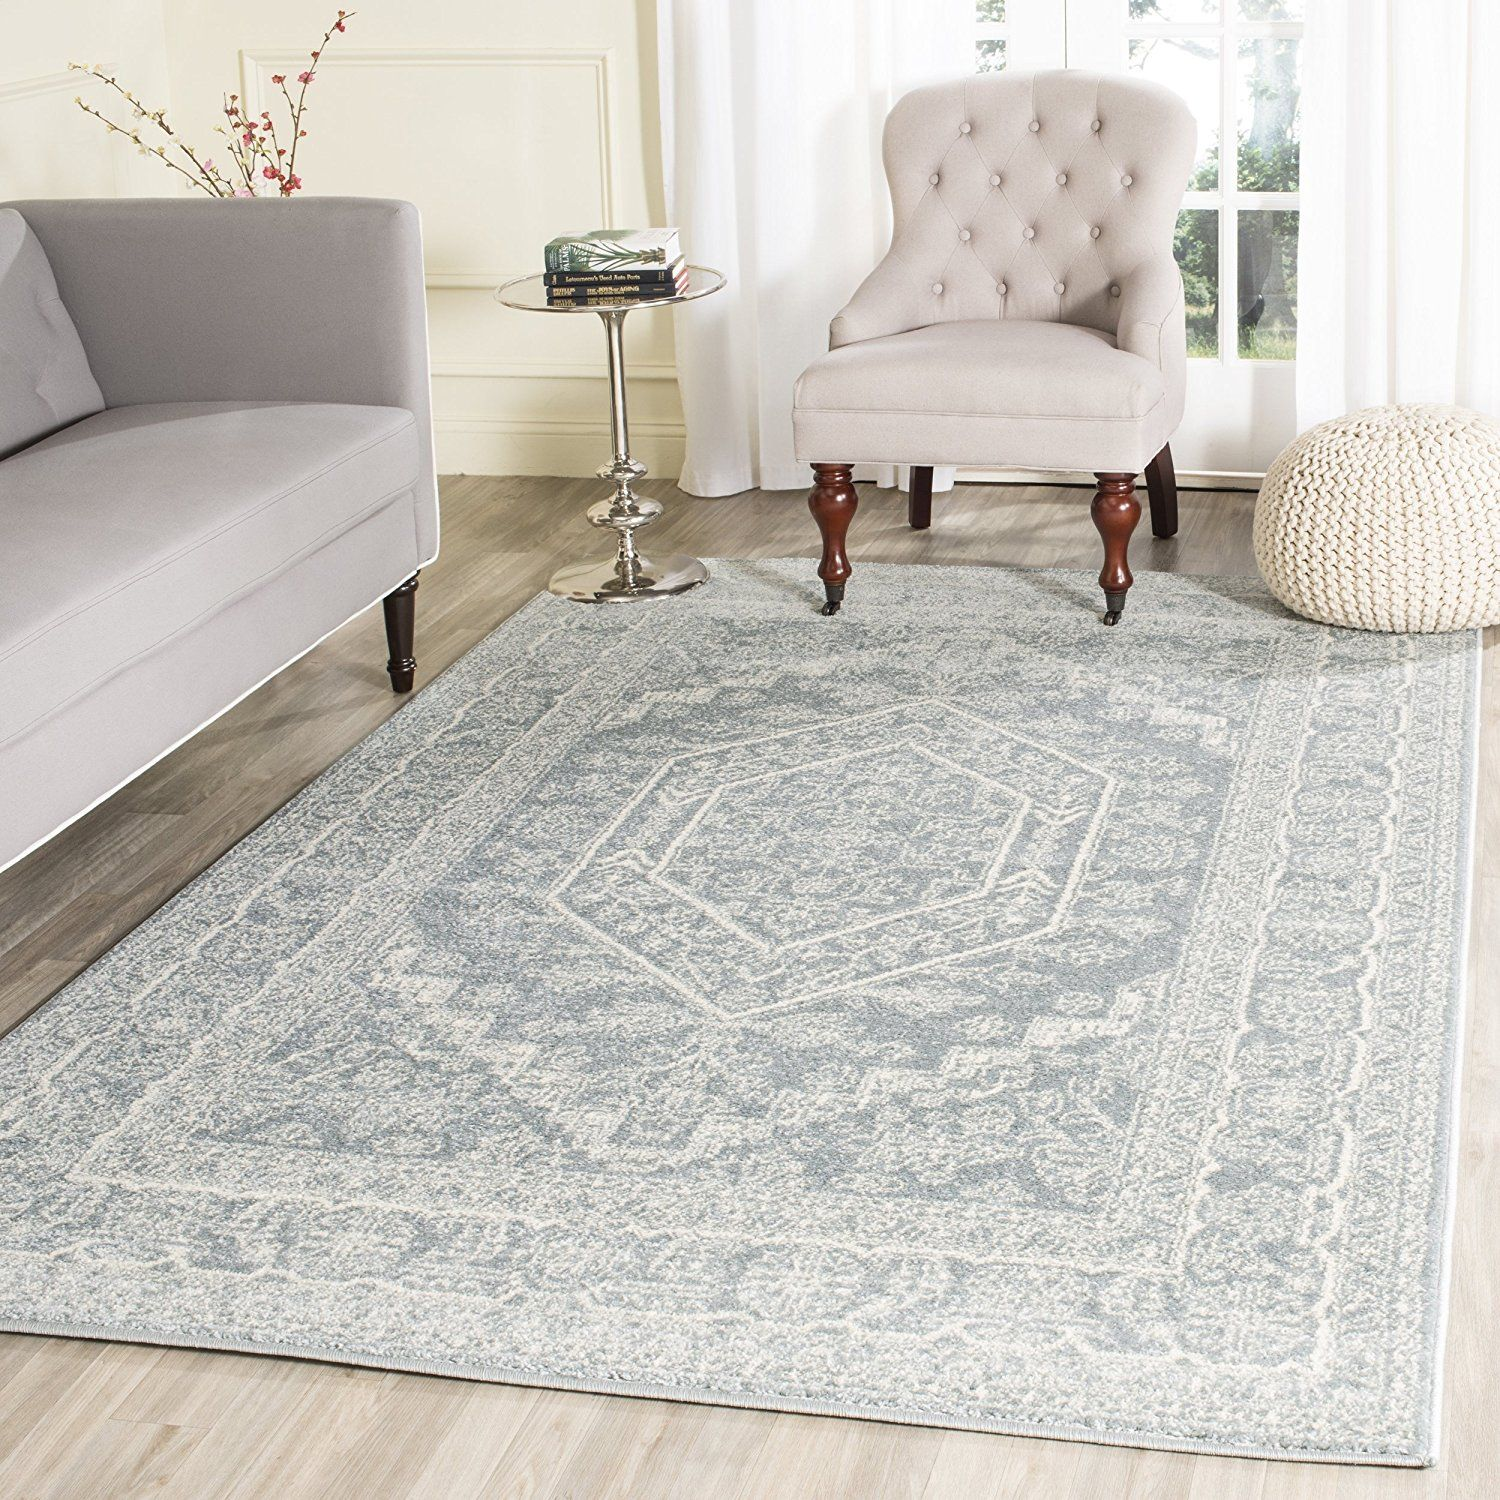 Amazon.com: Safavieh Adirondack Collection ADR108B Ivory and Silver Oriental Vintage Area Rug (6' x 9'): Kitchen & Dining